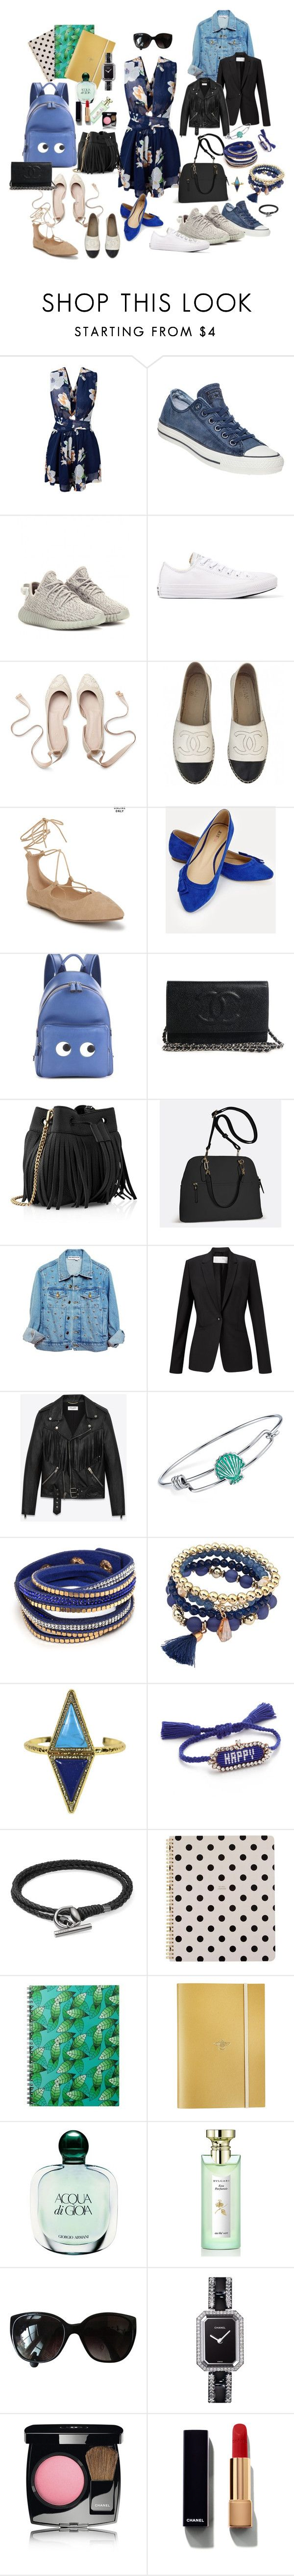 """office set"" by veronic-s on Polyvore featuring Converse, adidas Originals, Chanel, Aéropostale, JustFab, Anya Hindmarch, Whistles, Avenue, HUGO and Yves Saint Laurent"